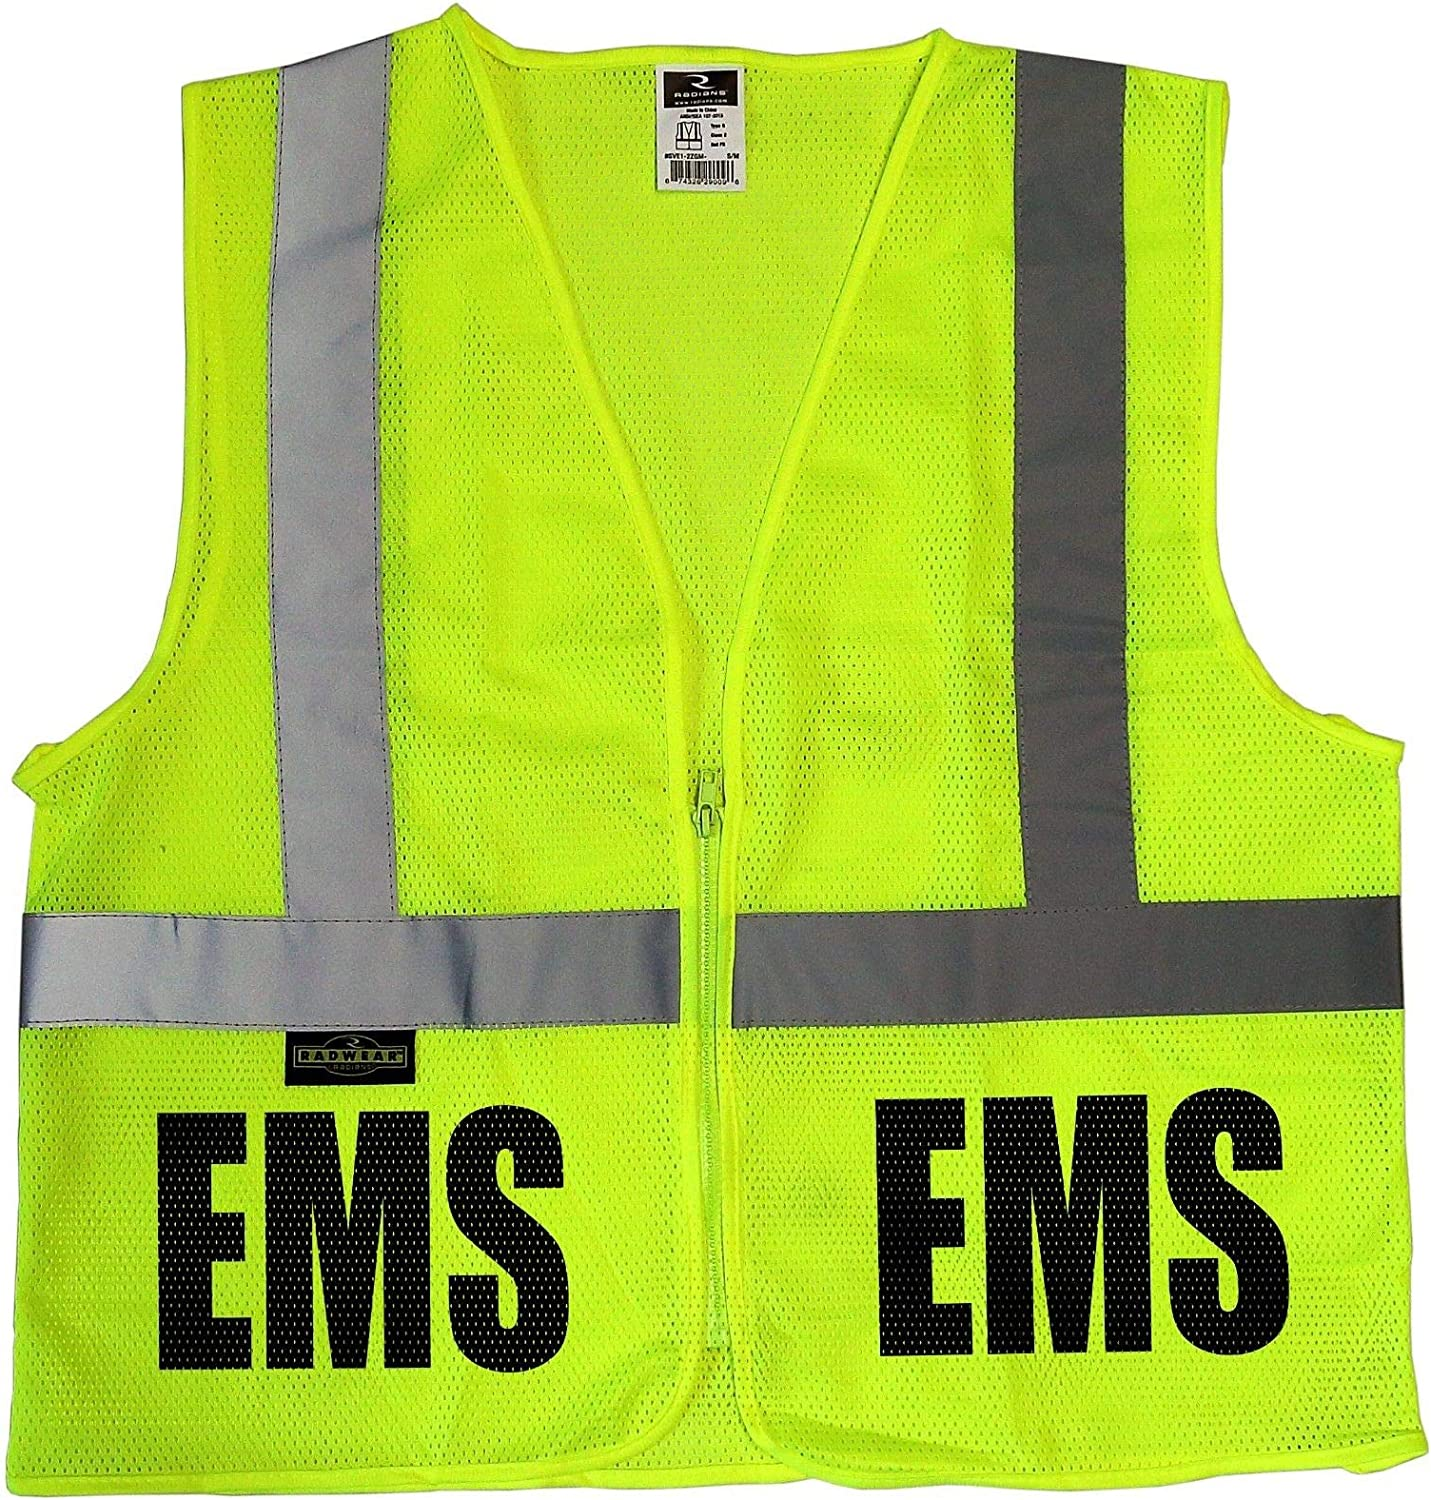 Conspiracy Tee Emergency Medical Services High Choice Max 65% OFF Safety EMS Vest